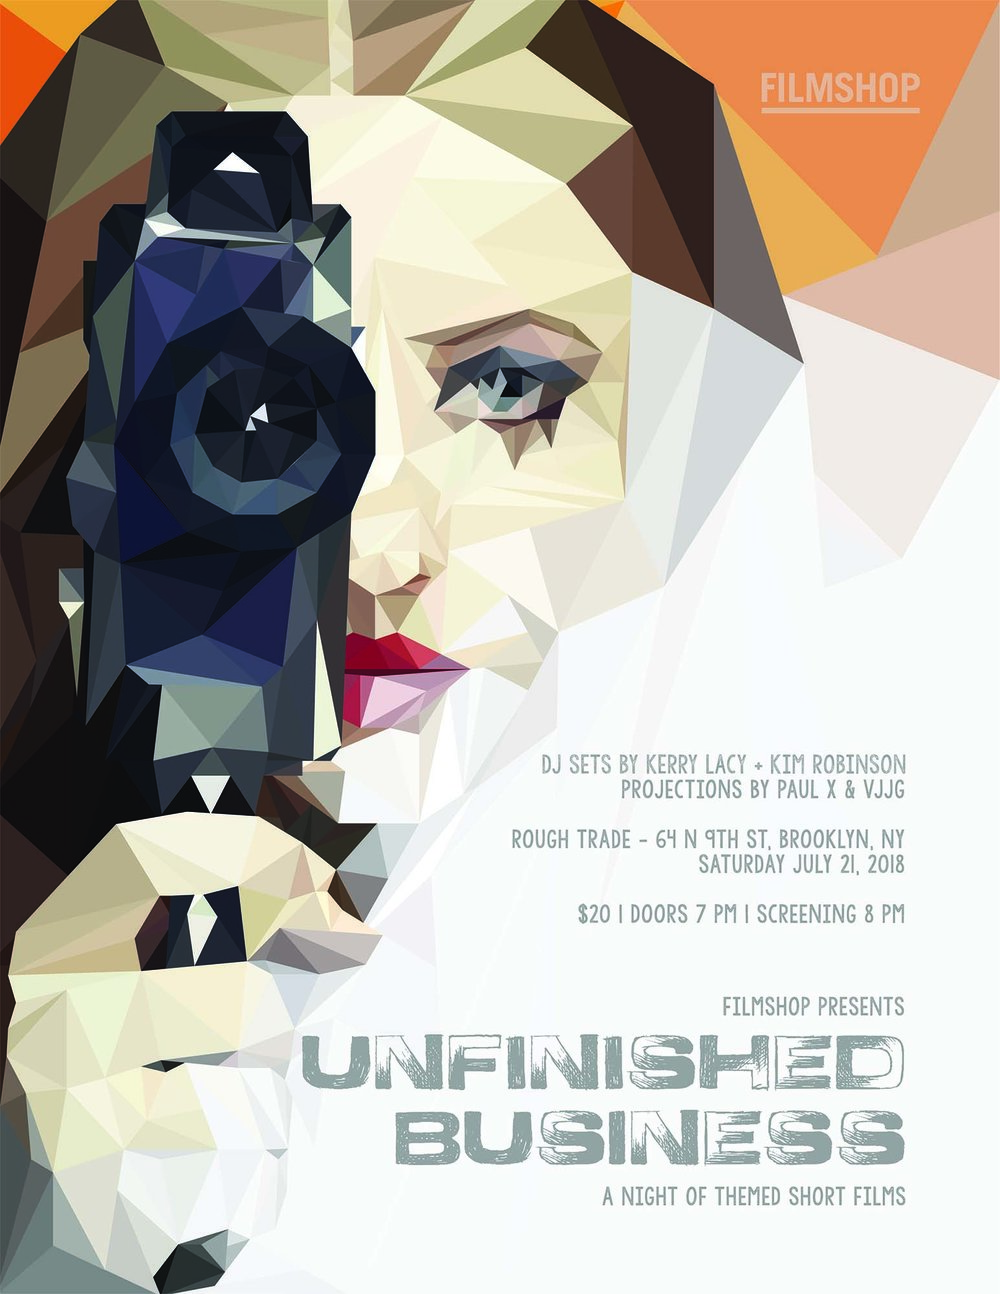 Filmshop presents Unfinished Business, Filmshop, Unfinished Business, filmmaking, filmmaker, film, films, filmmaker life